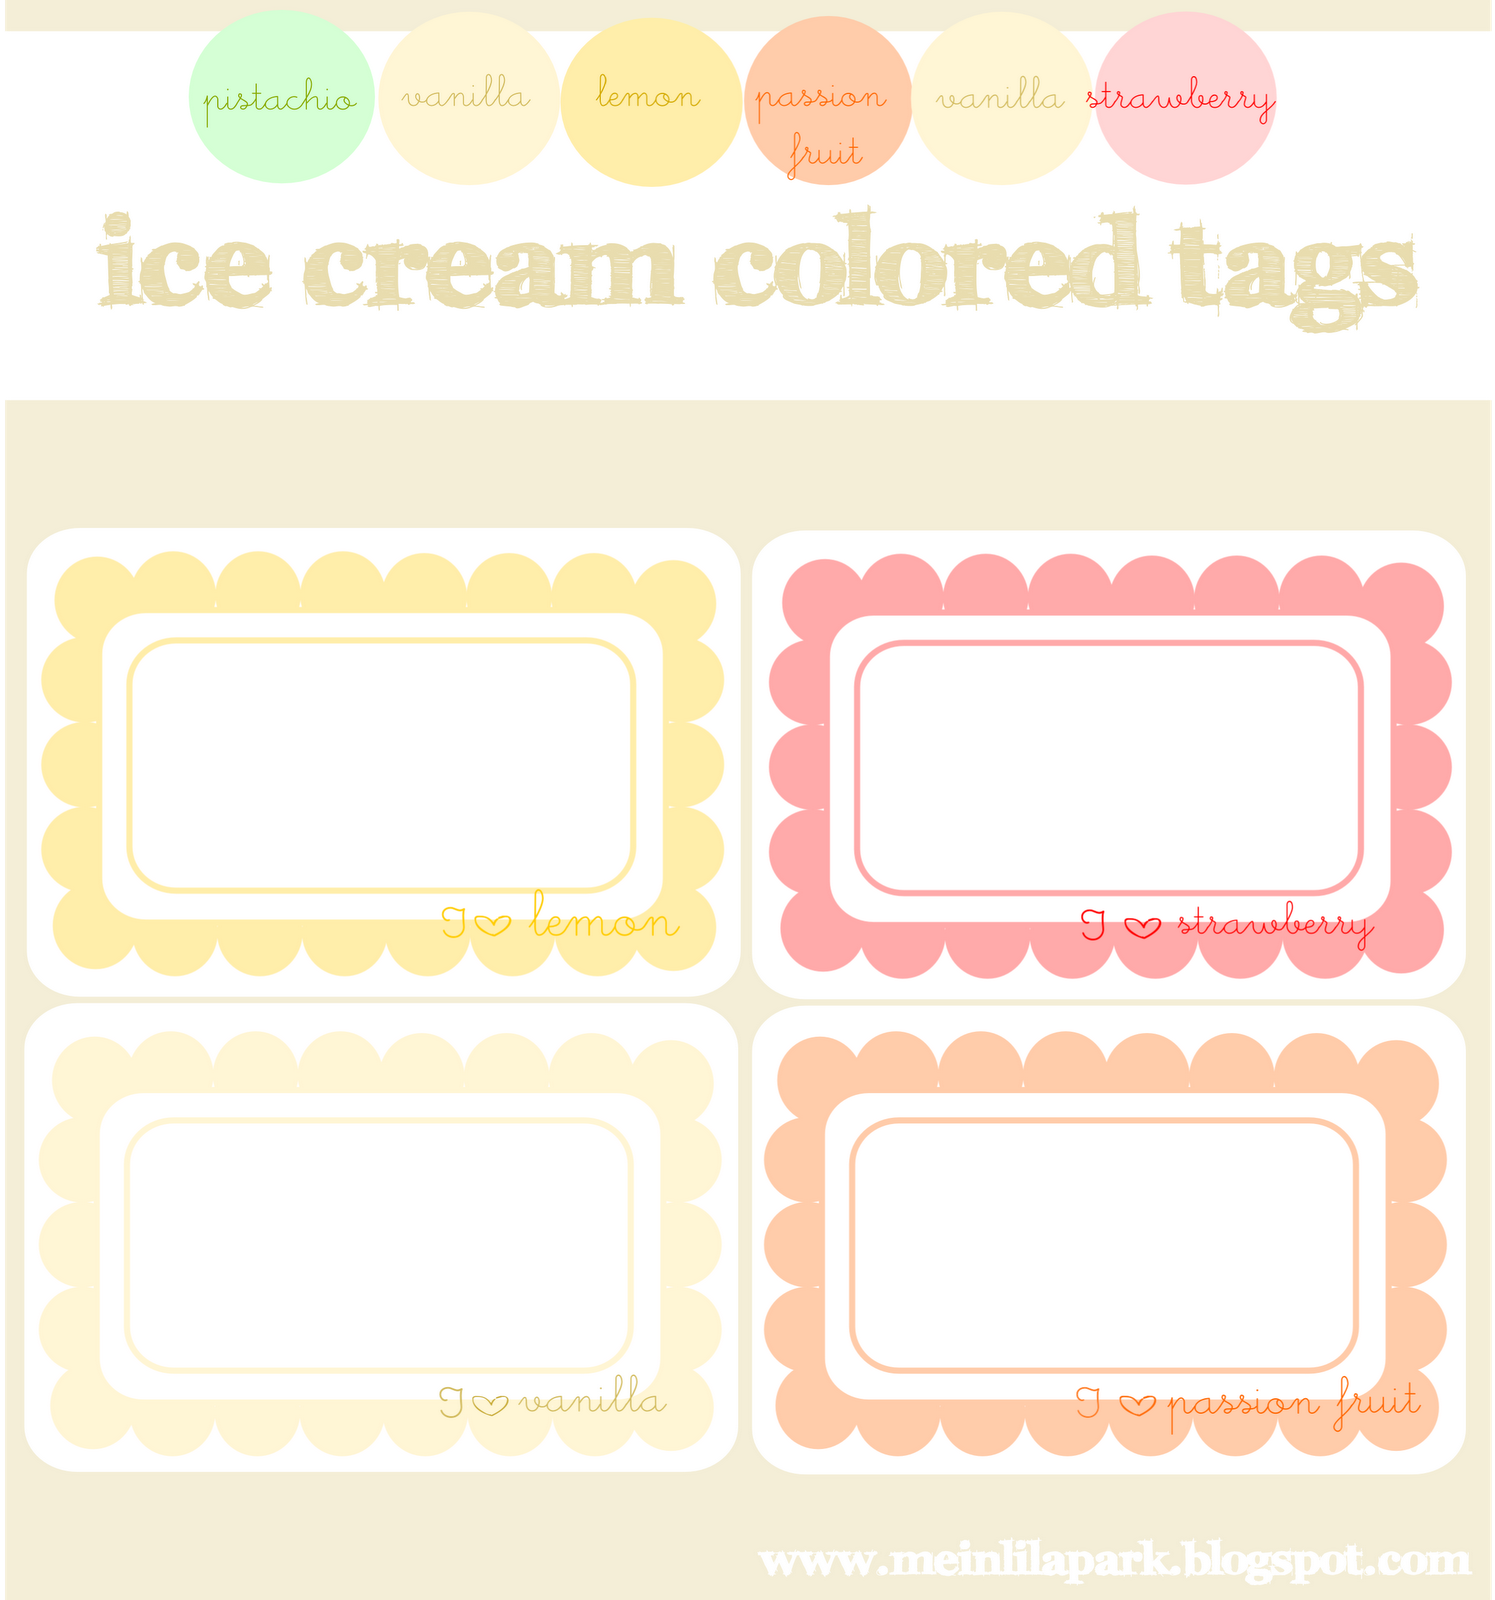 Free Digital Ice Cream Colored Scalloped Journaling Spots